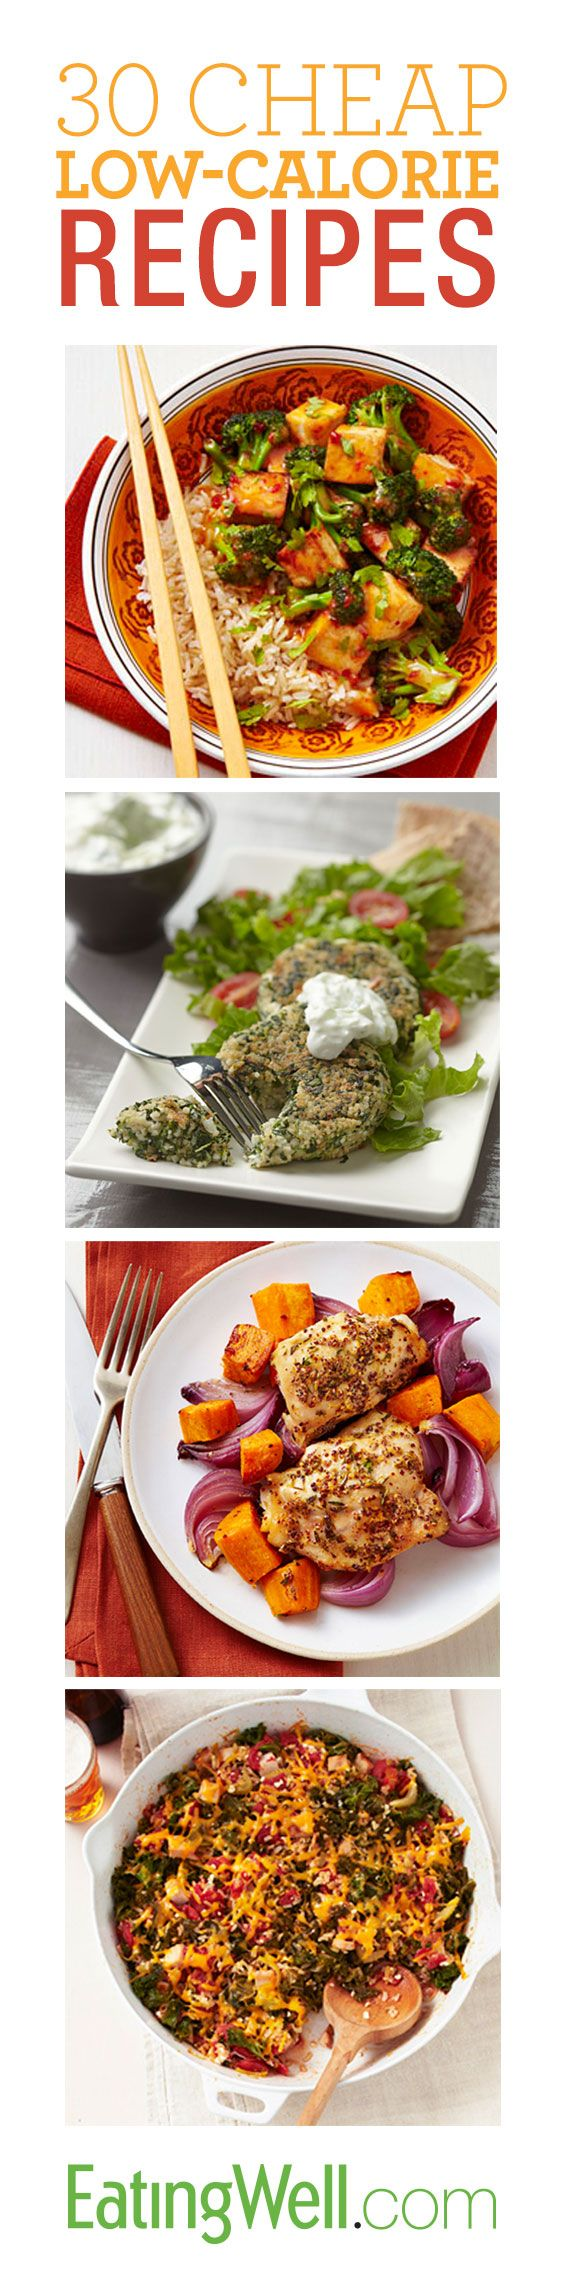 Get the recipes on EatingWell.com